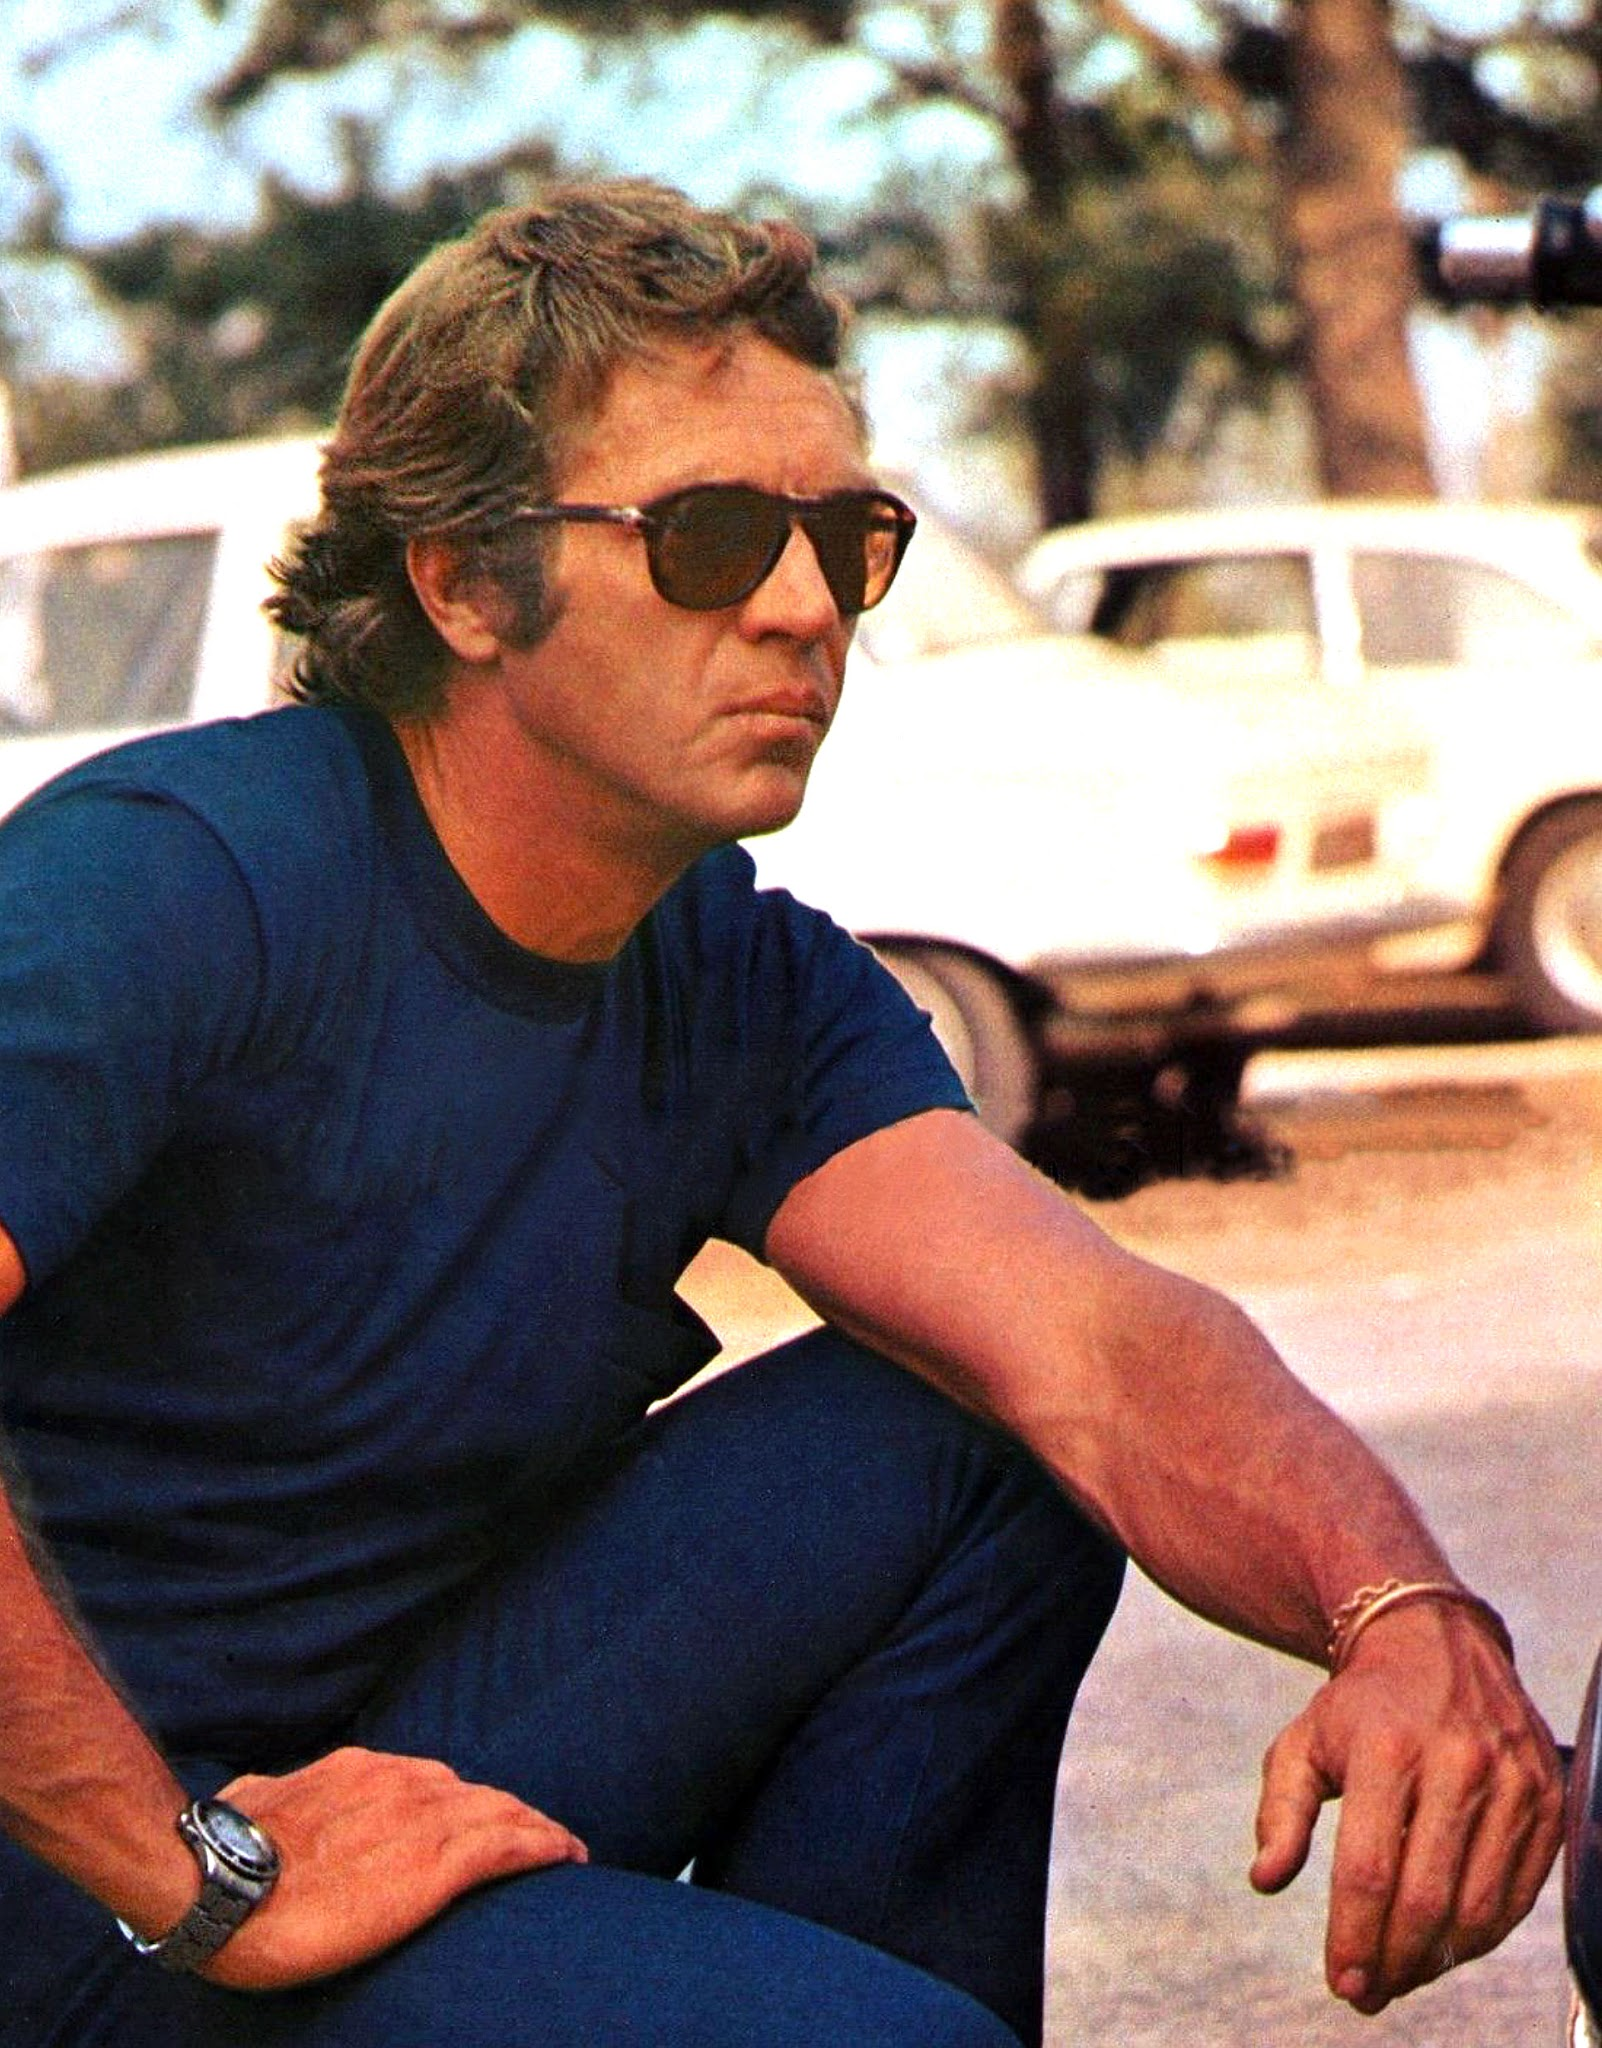 6abb3e32f5 ... Rolex Submariner with his super-cool fold-up Person Sunglasses. I first  began chronicling Steve McQueen wearing Rolex Submariner models back in  2008 in ...